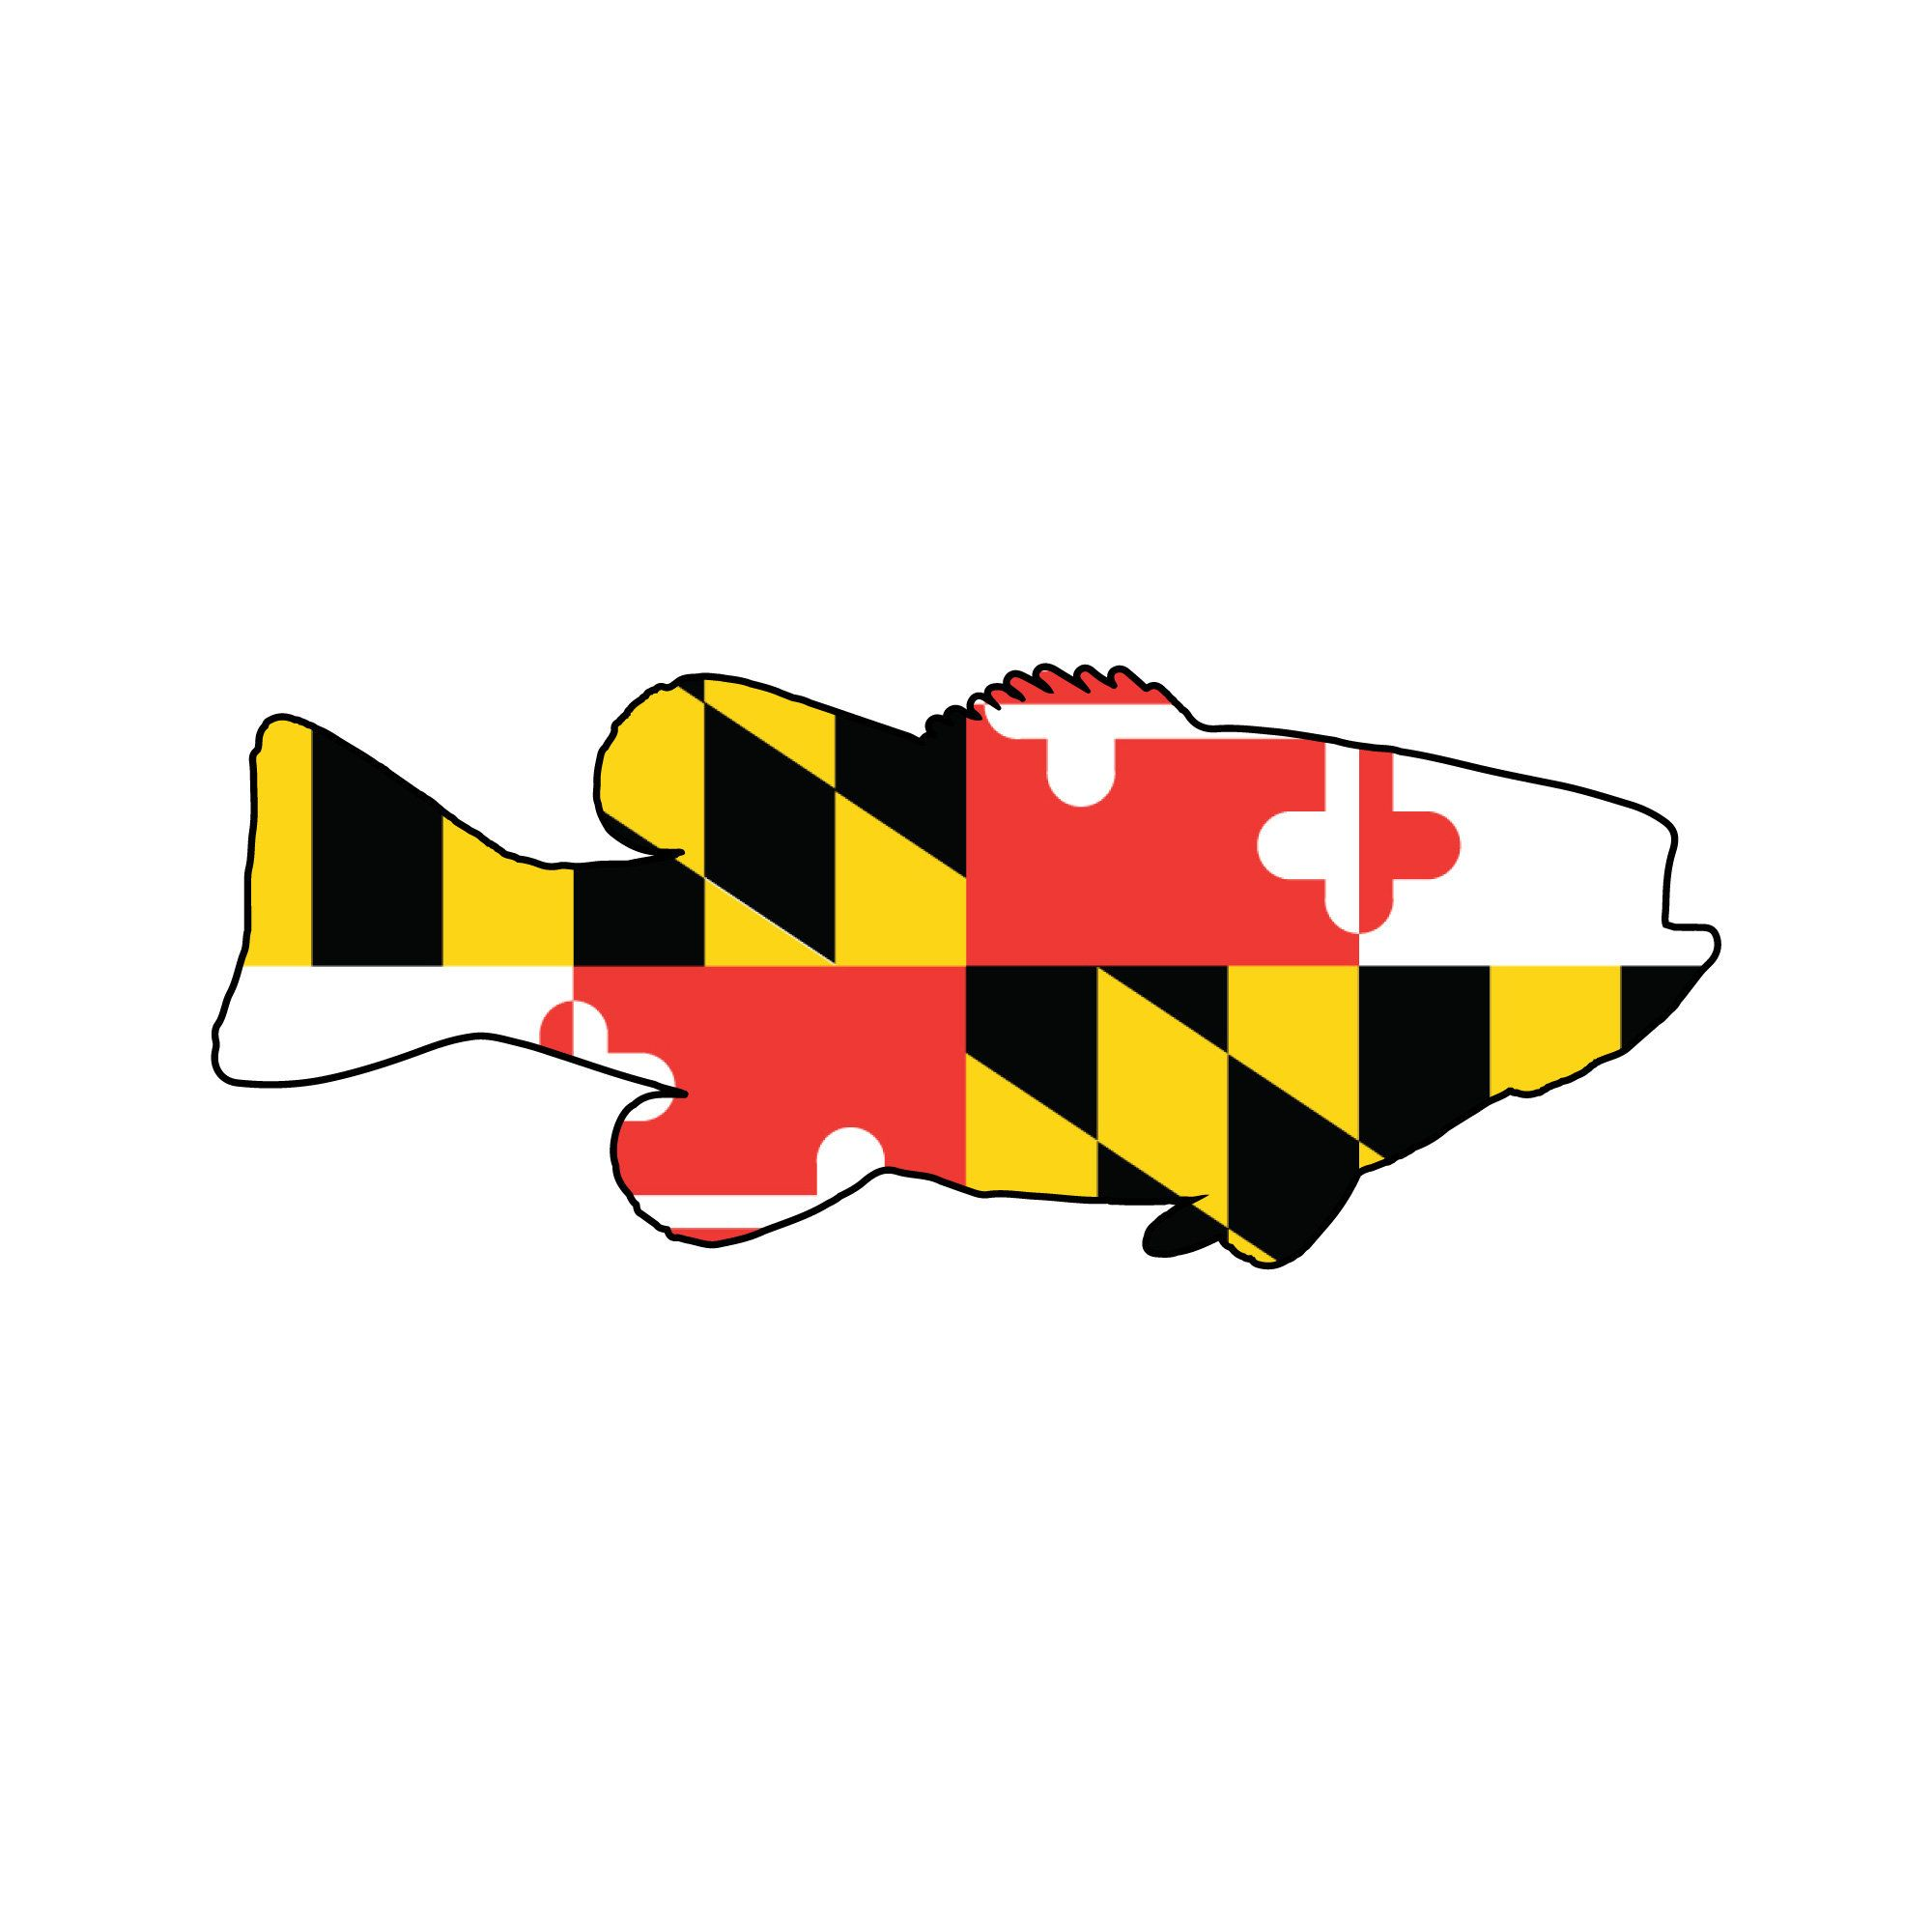 Maryland Flag Smallmouth Bass Decal Smallmouth Window Etsy In 2020 Maryland Flag Window Stickers Window Decals